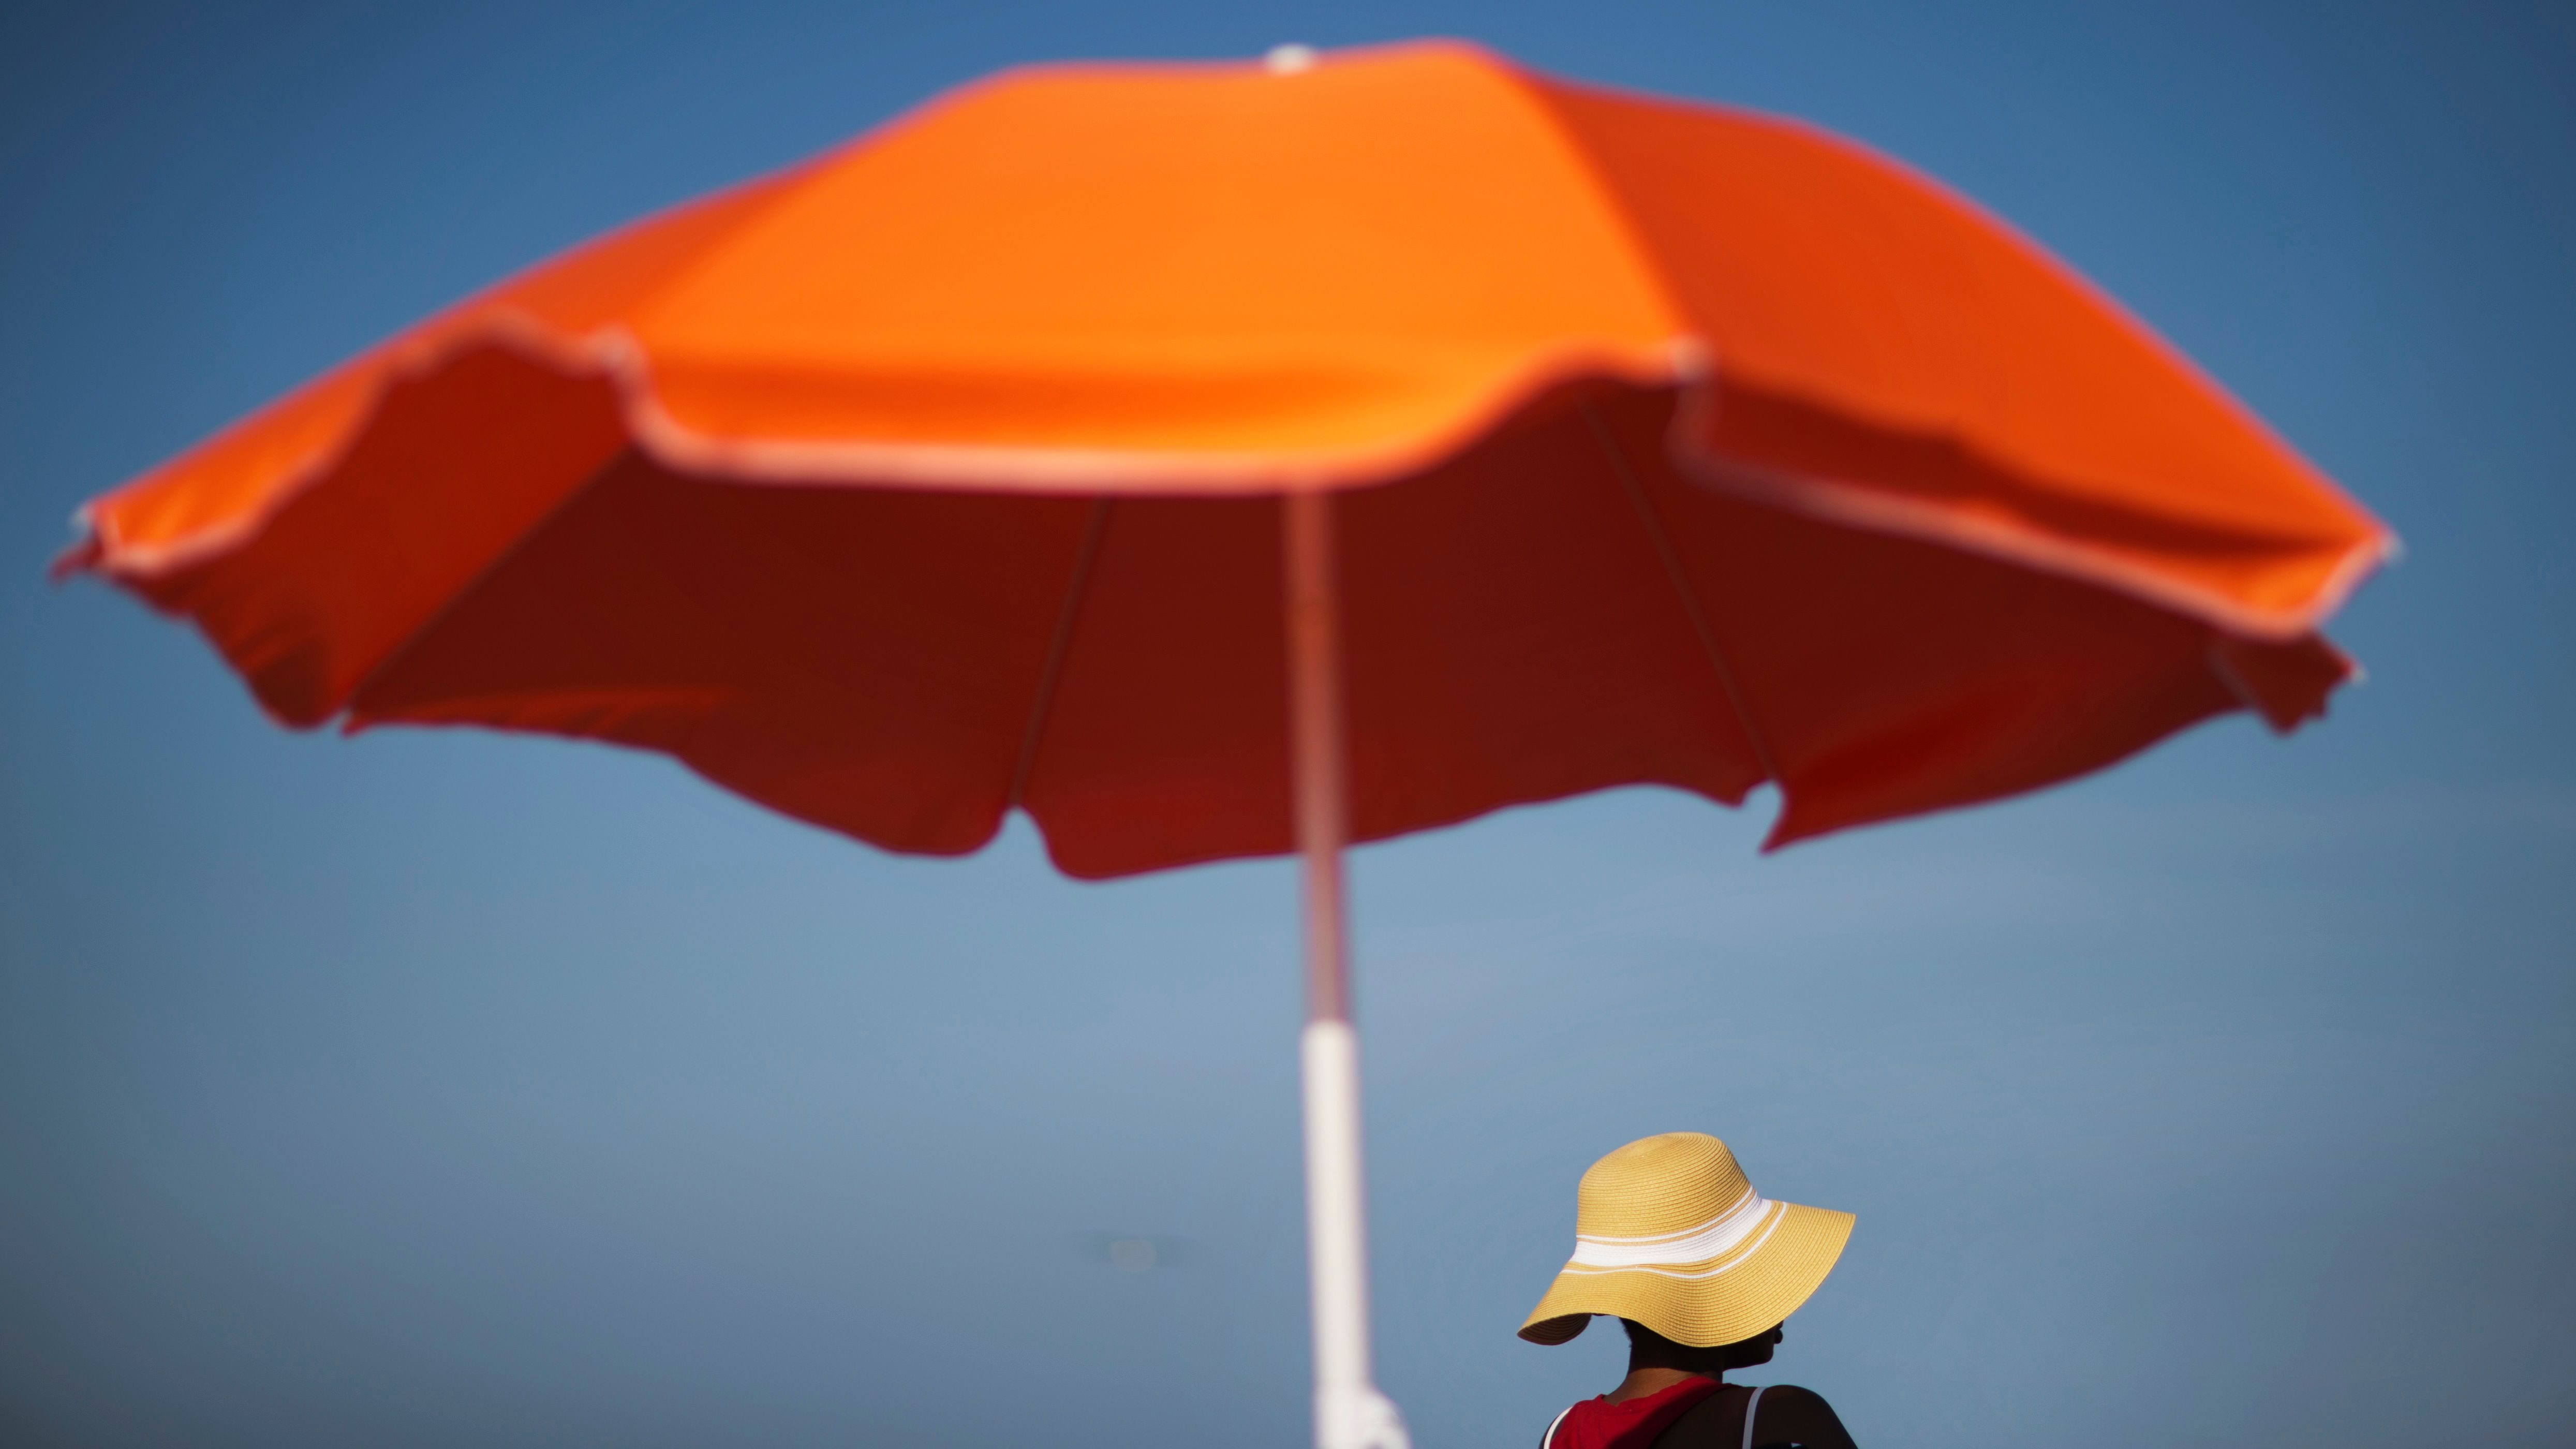 Someone in a brimmed hat sitting under a big orange umbrella